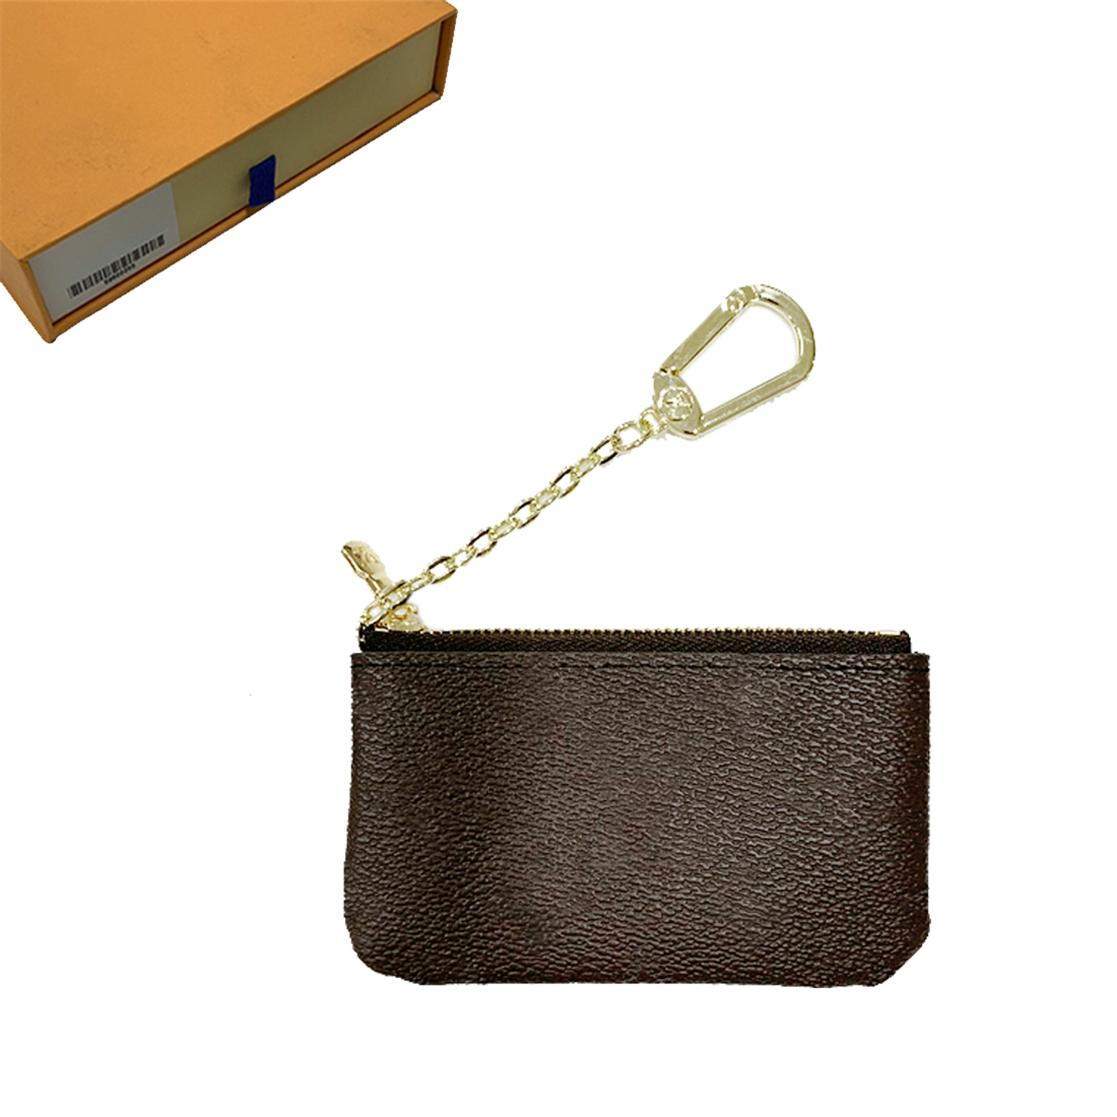 Key Wallets Coin Purses Wallet Mens Key Pouch Womens Card Holder Handbags Leather Card Chain Mini Wallets Coin Purse Clutch Handbag 21 6953